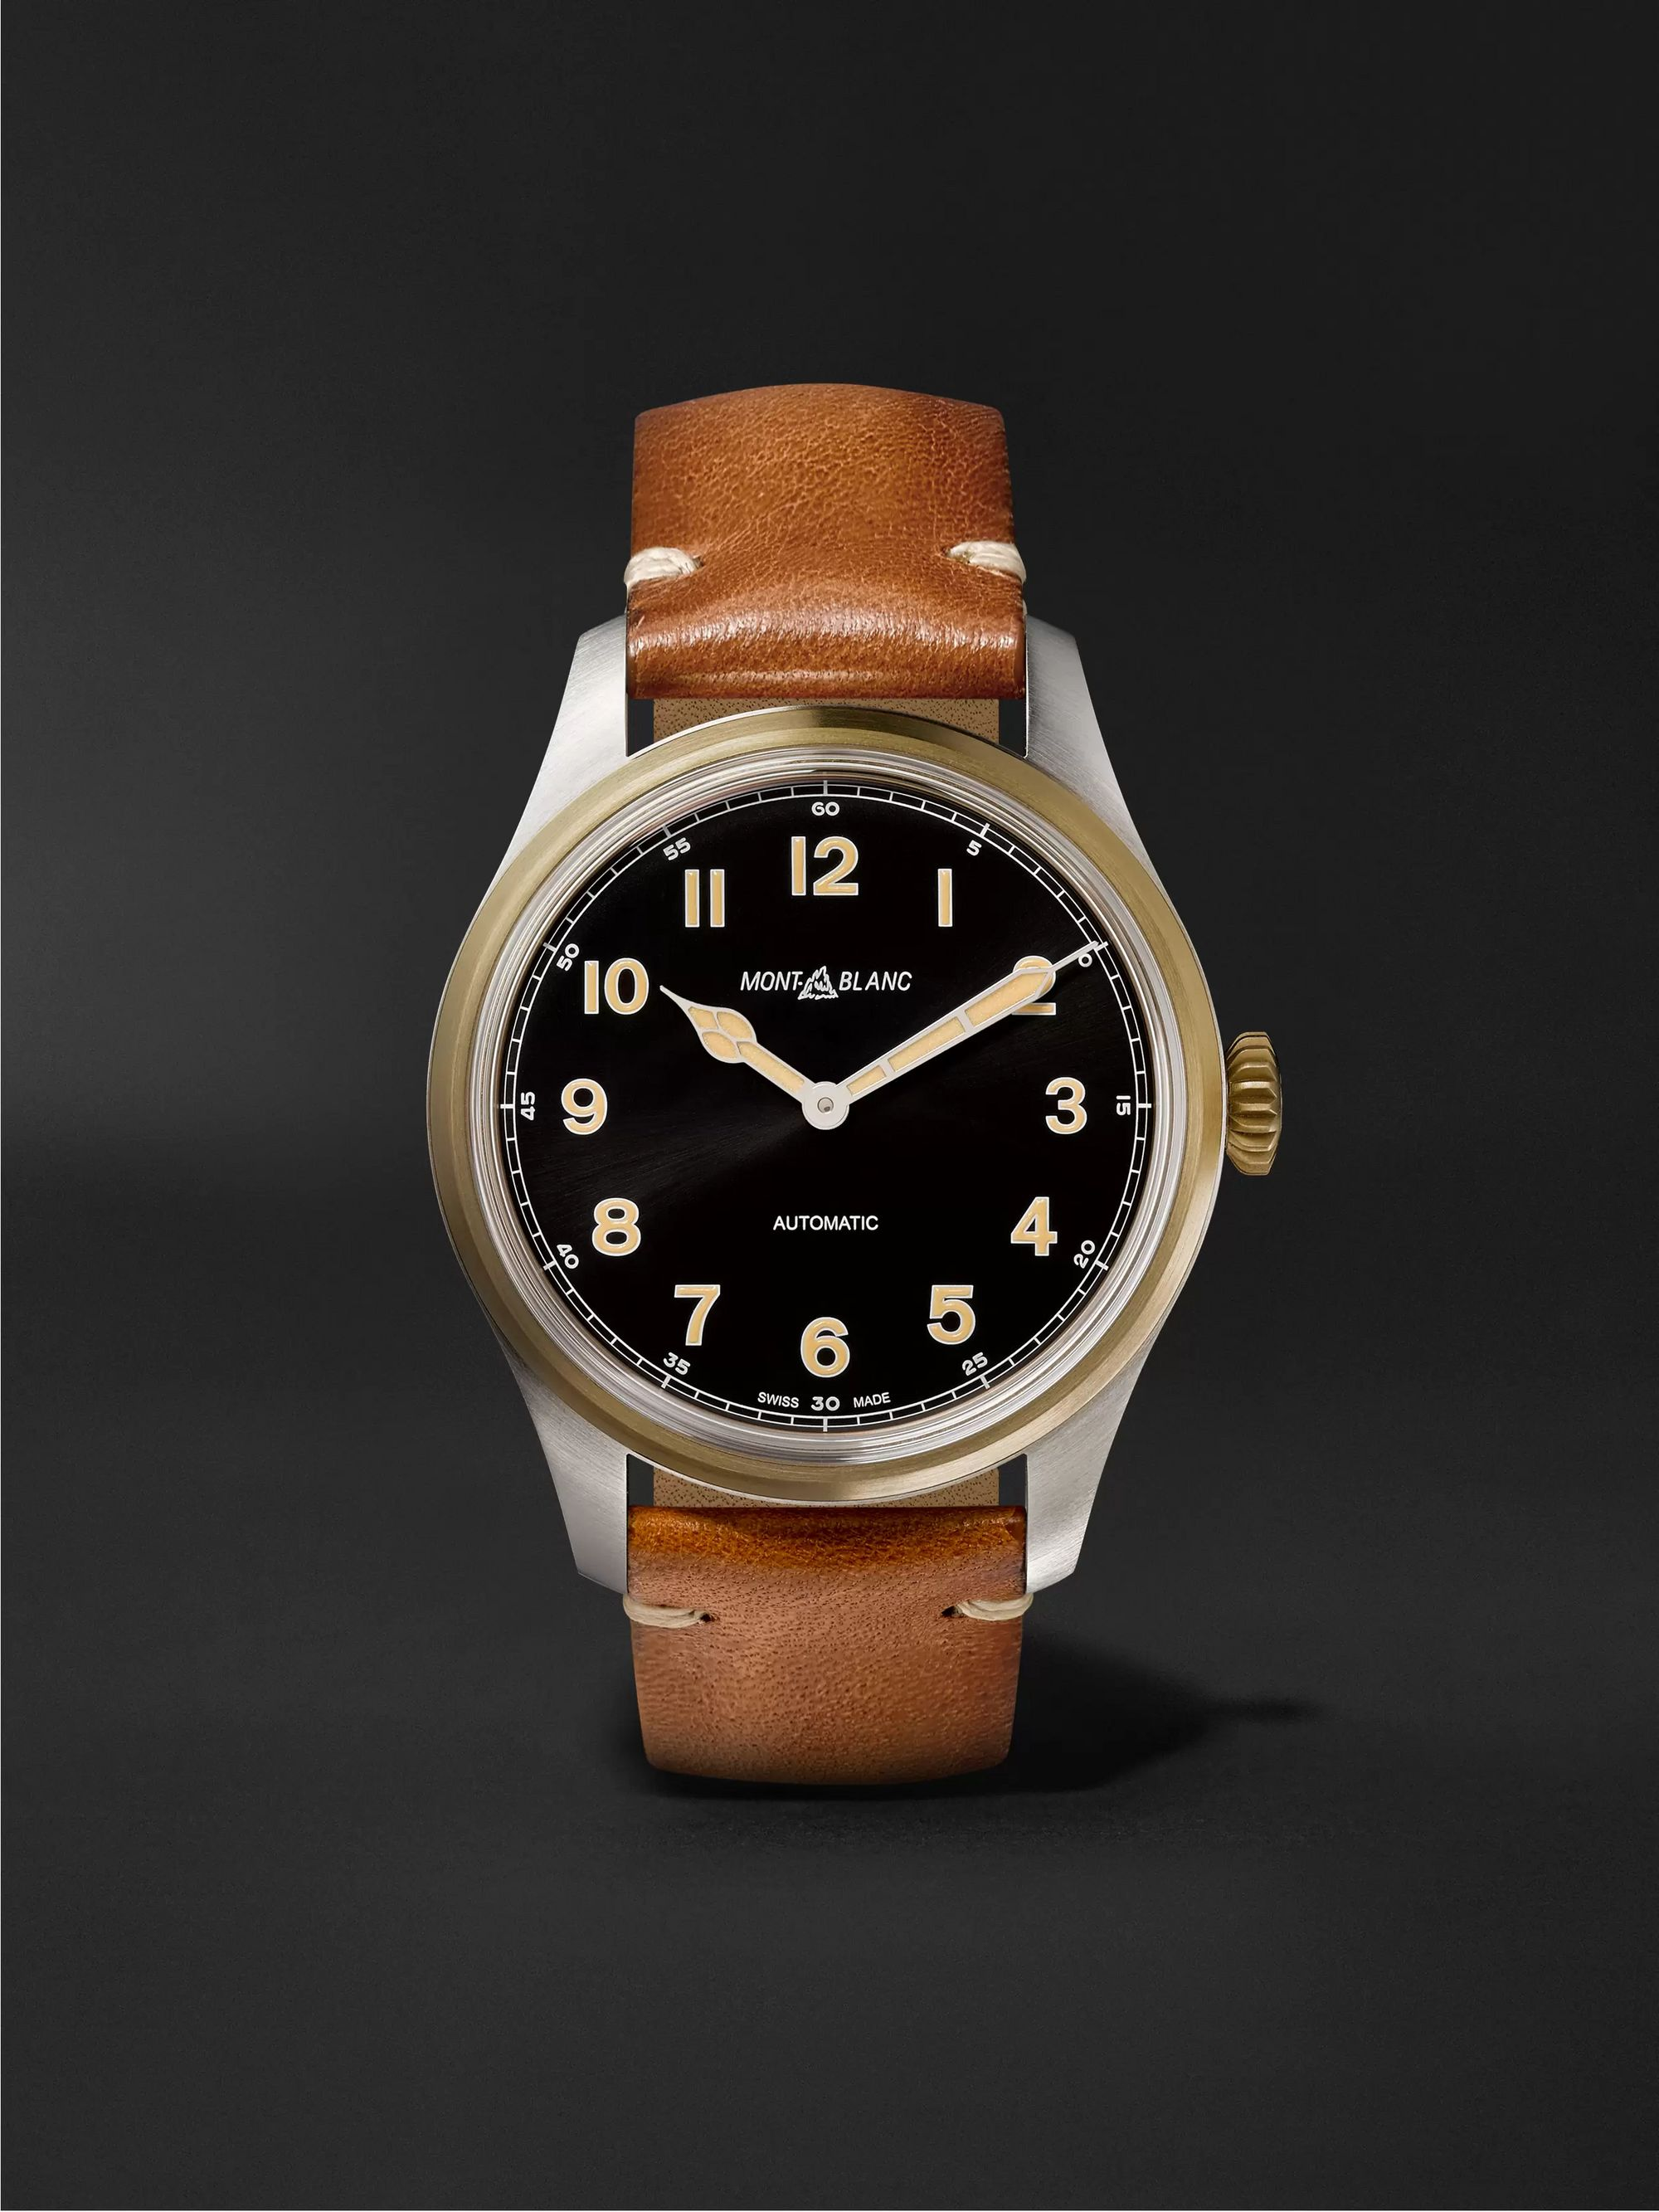 Montblanc 1858 Automatic 40mm Stainless Steel, Bronze and Leather Watch, Ref. No. 117833